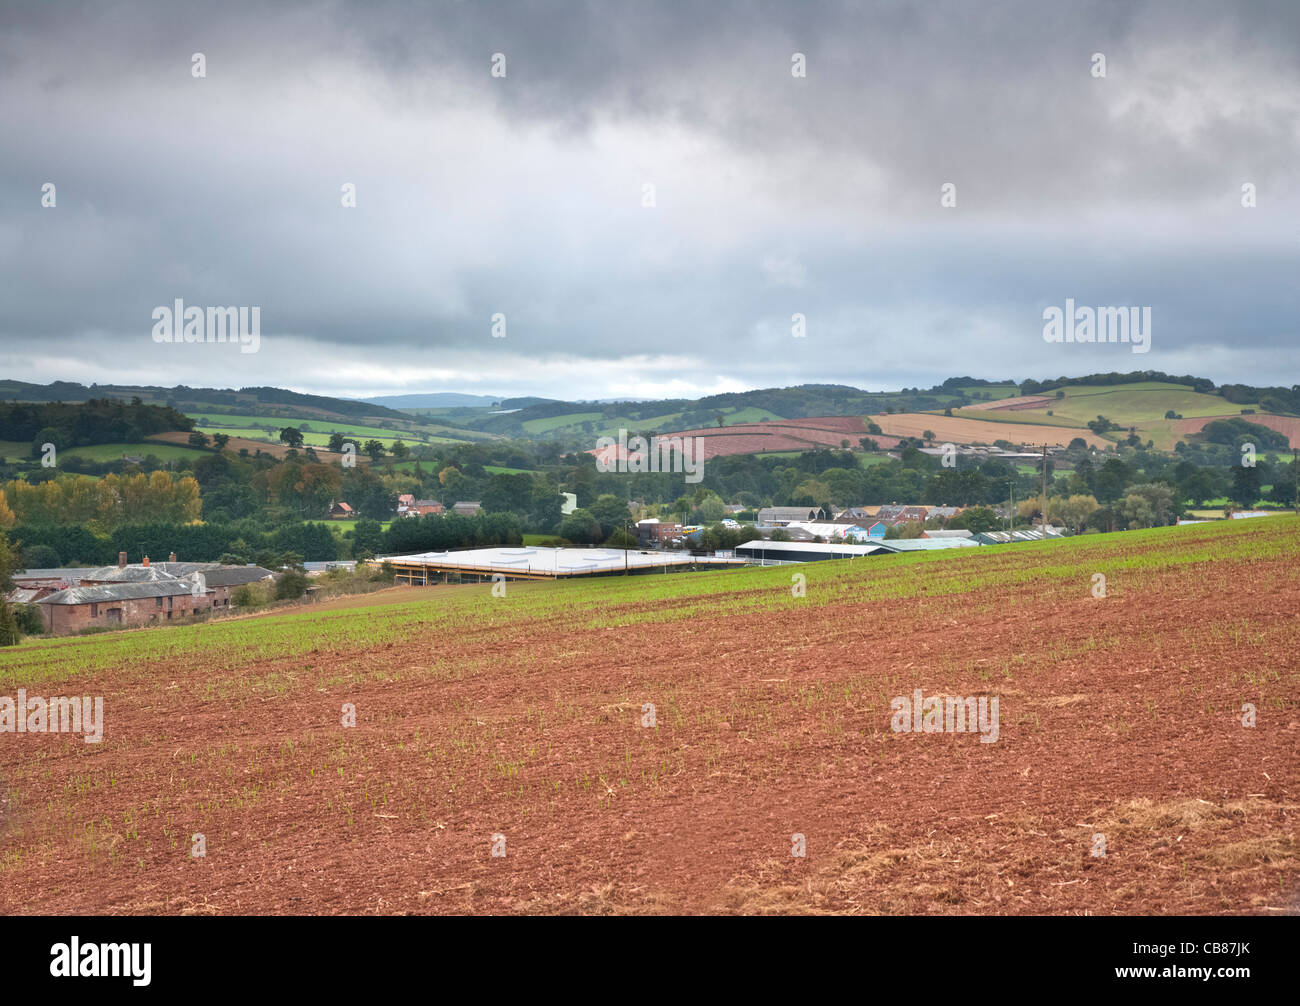 Farm fields and landscape with buildings, Devon, England - Stock Image